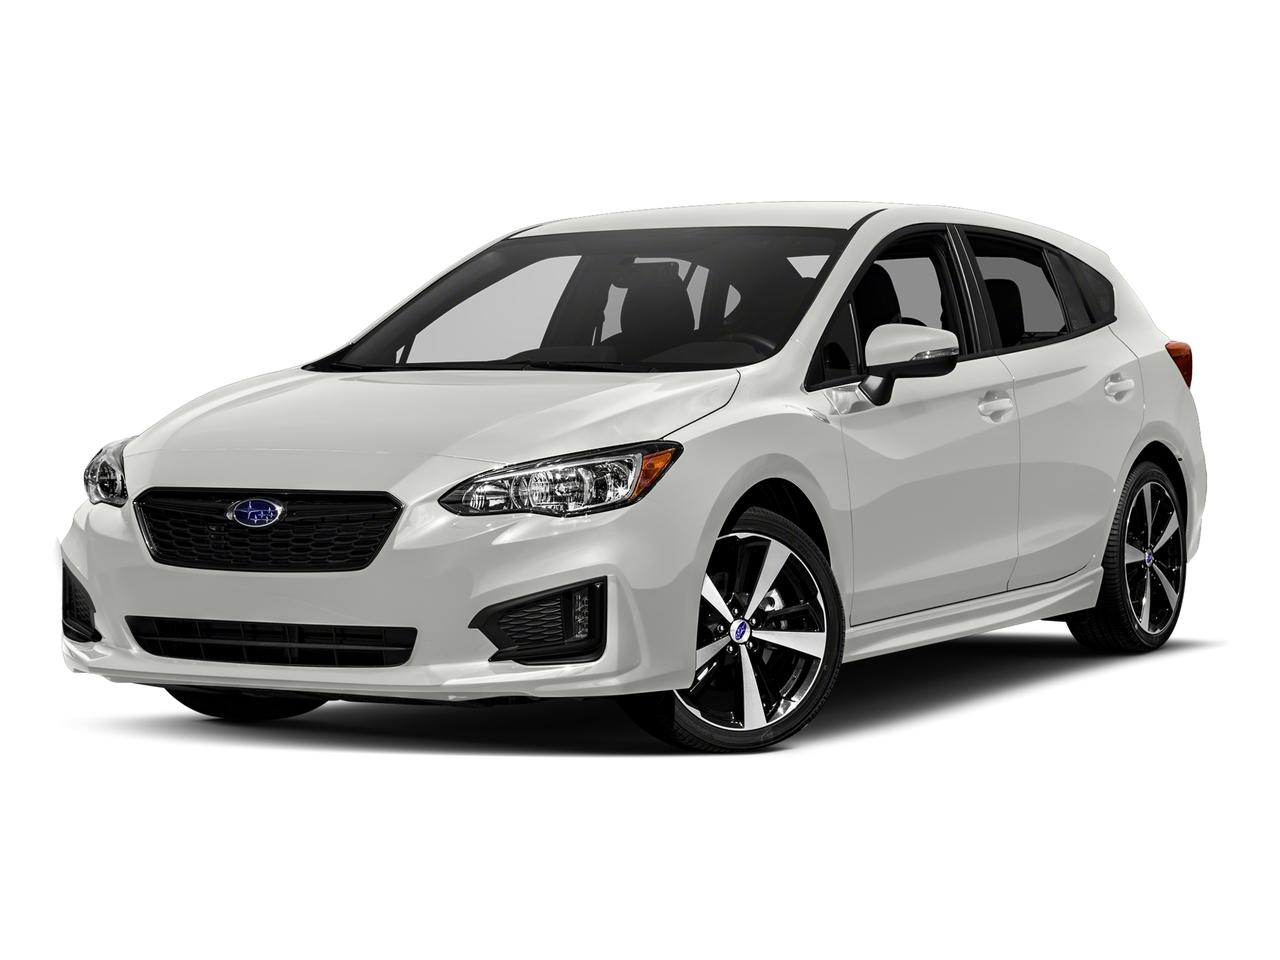 2018 Subaru Impreza Vehicle Photo in Allentown, PA 18103